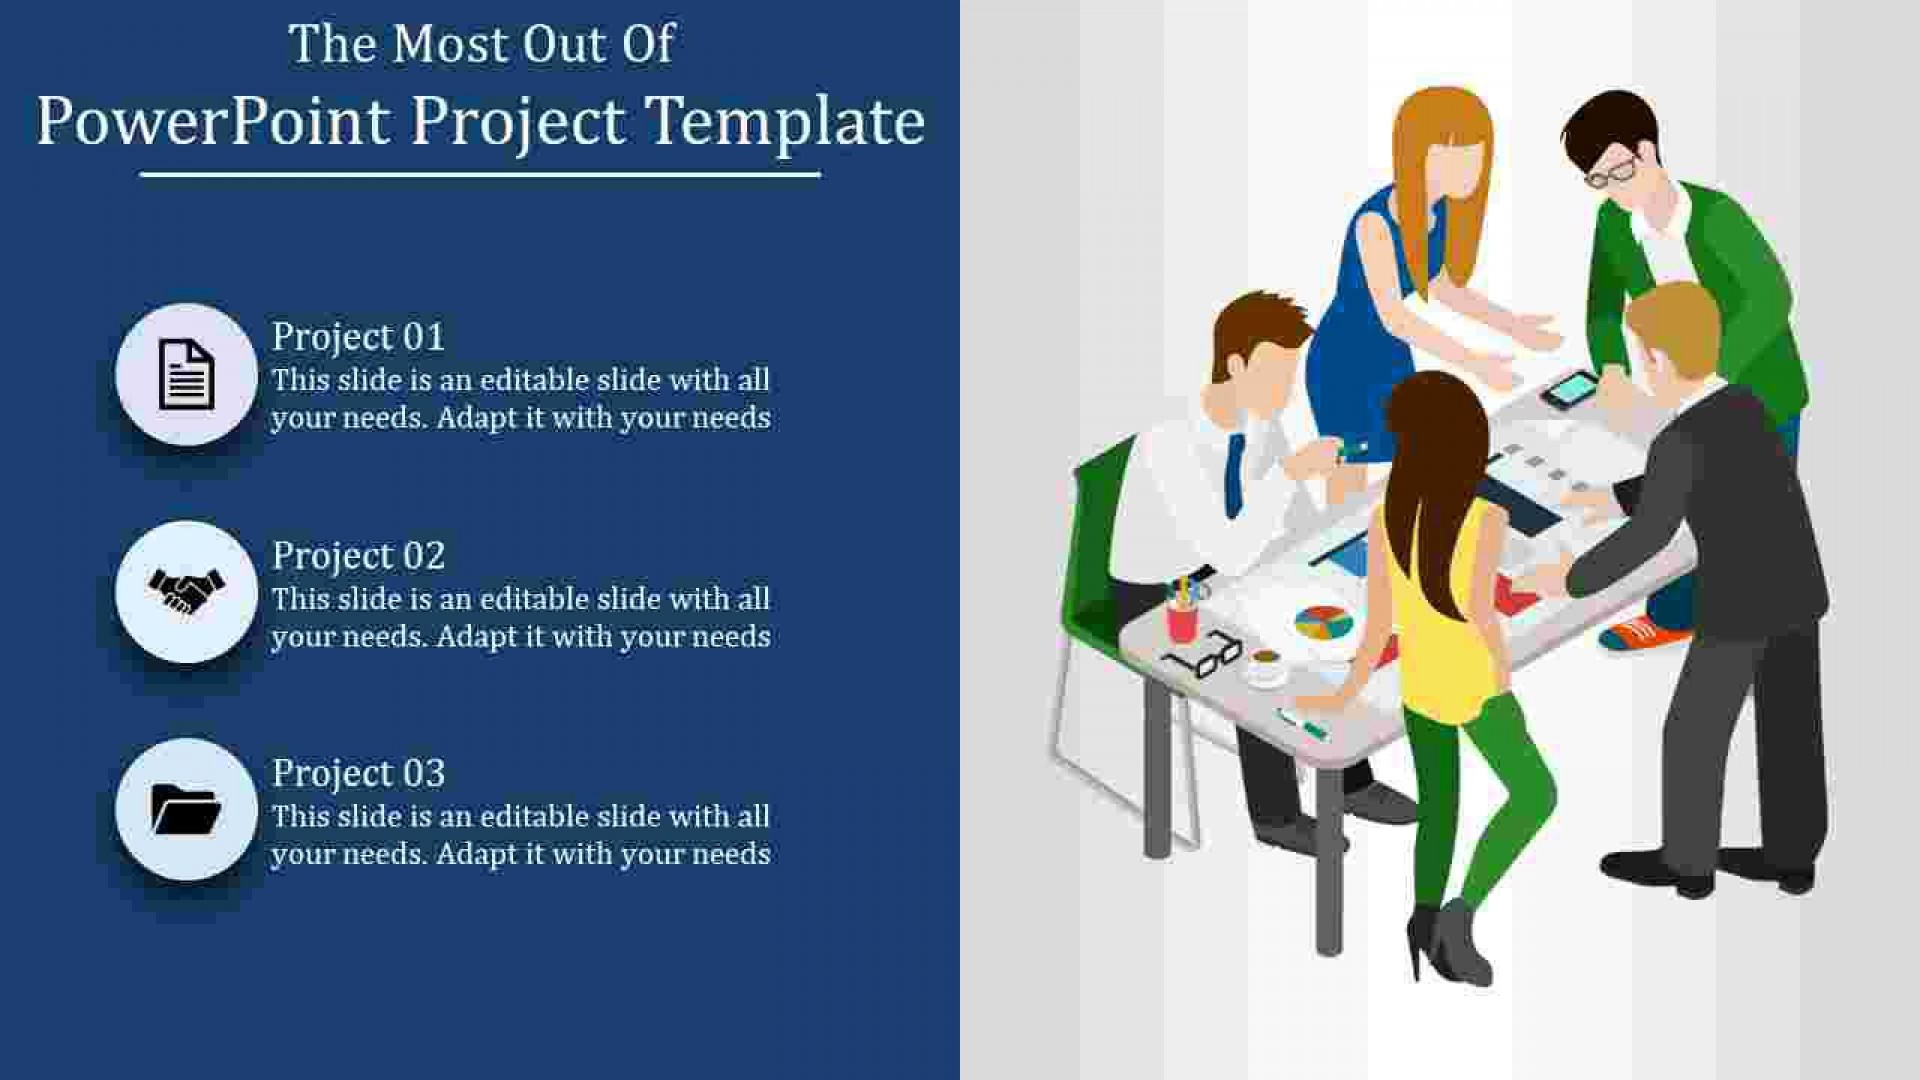 005 Unbelievable Project Role And Responsibilitie Template Powerpoint Design 1920